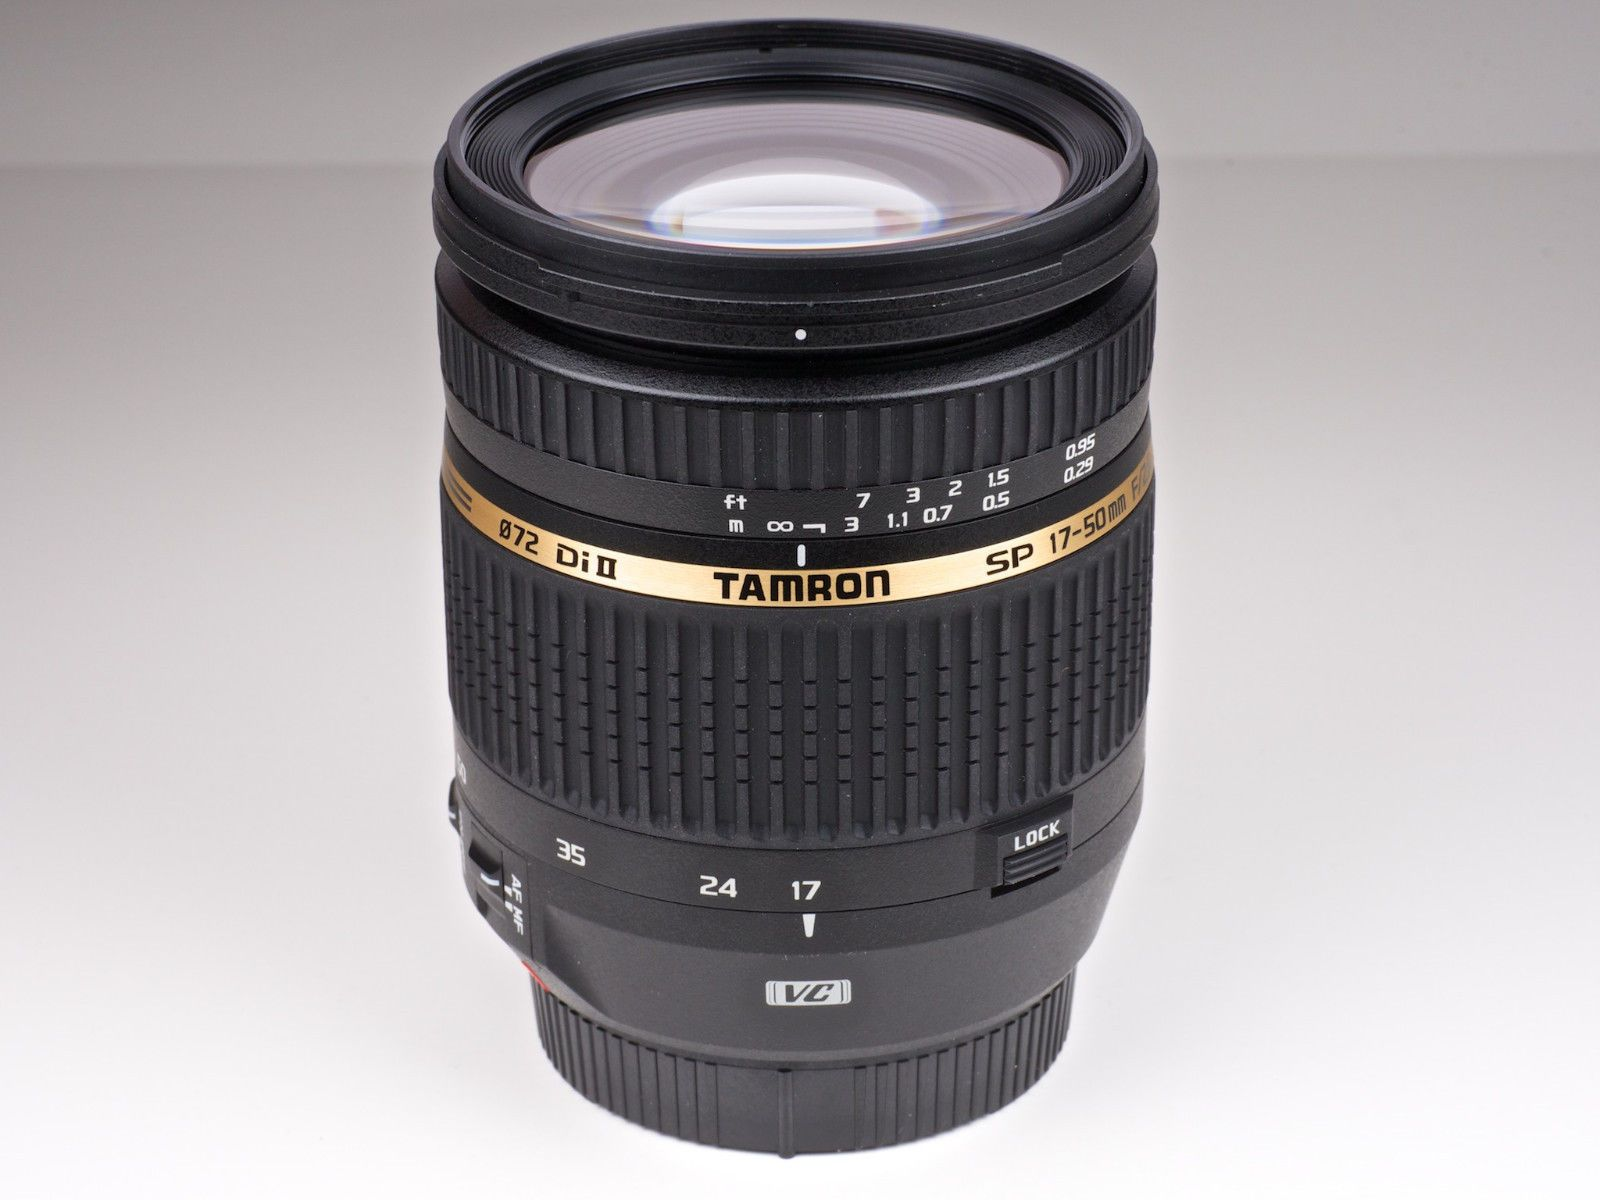 Sale Review Tamron SP 17-50mm f/2.8 Di-II XR VC IF AF Lens for Canon EF B005E AF016 OPEN BOX Check more at http://rover.ebay.com/rover/1/711-53200-19255-0/1?icep_ff3=1&pub=5575236953&toolid=10001&campid=5337976652&customid=&ipn=psmain&icep_vectorid=229466&kwid=902099&mtid=824&kw=lg